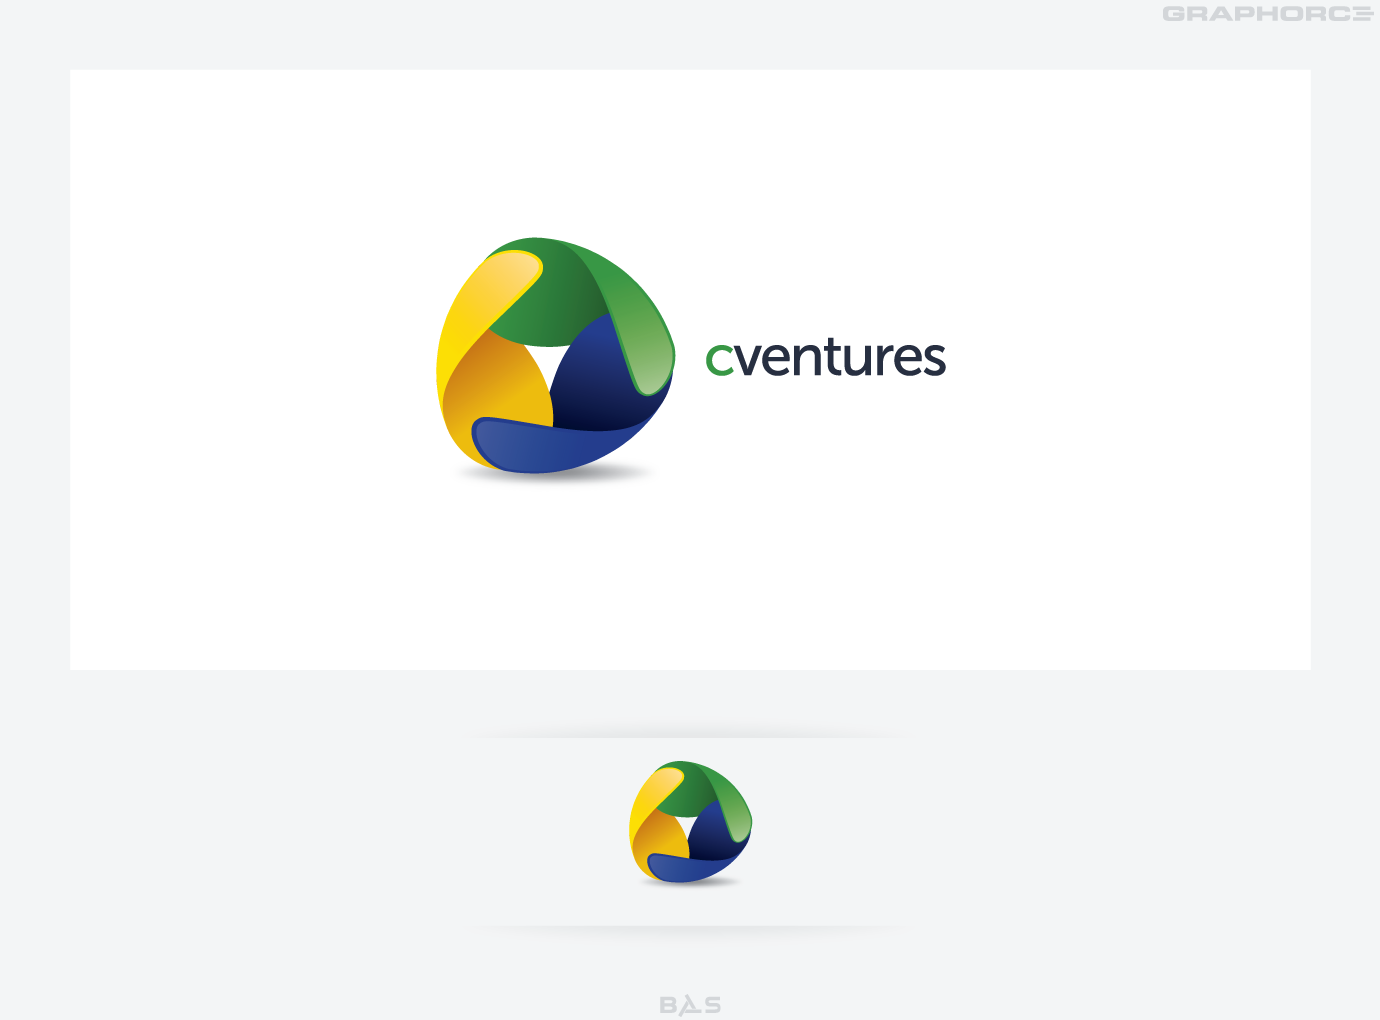 Help cventures with a new logo